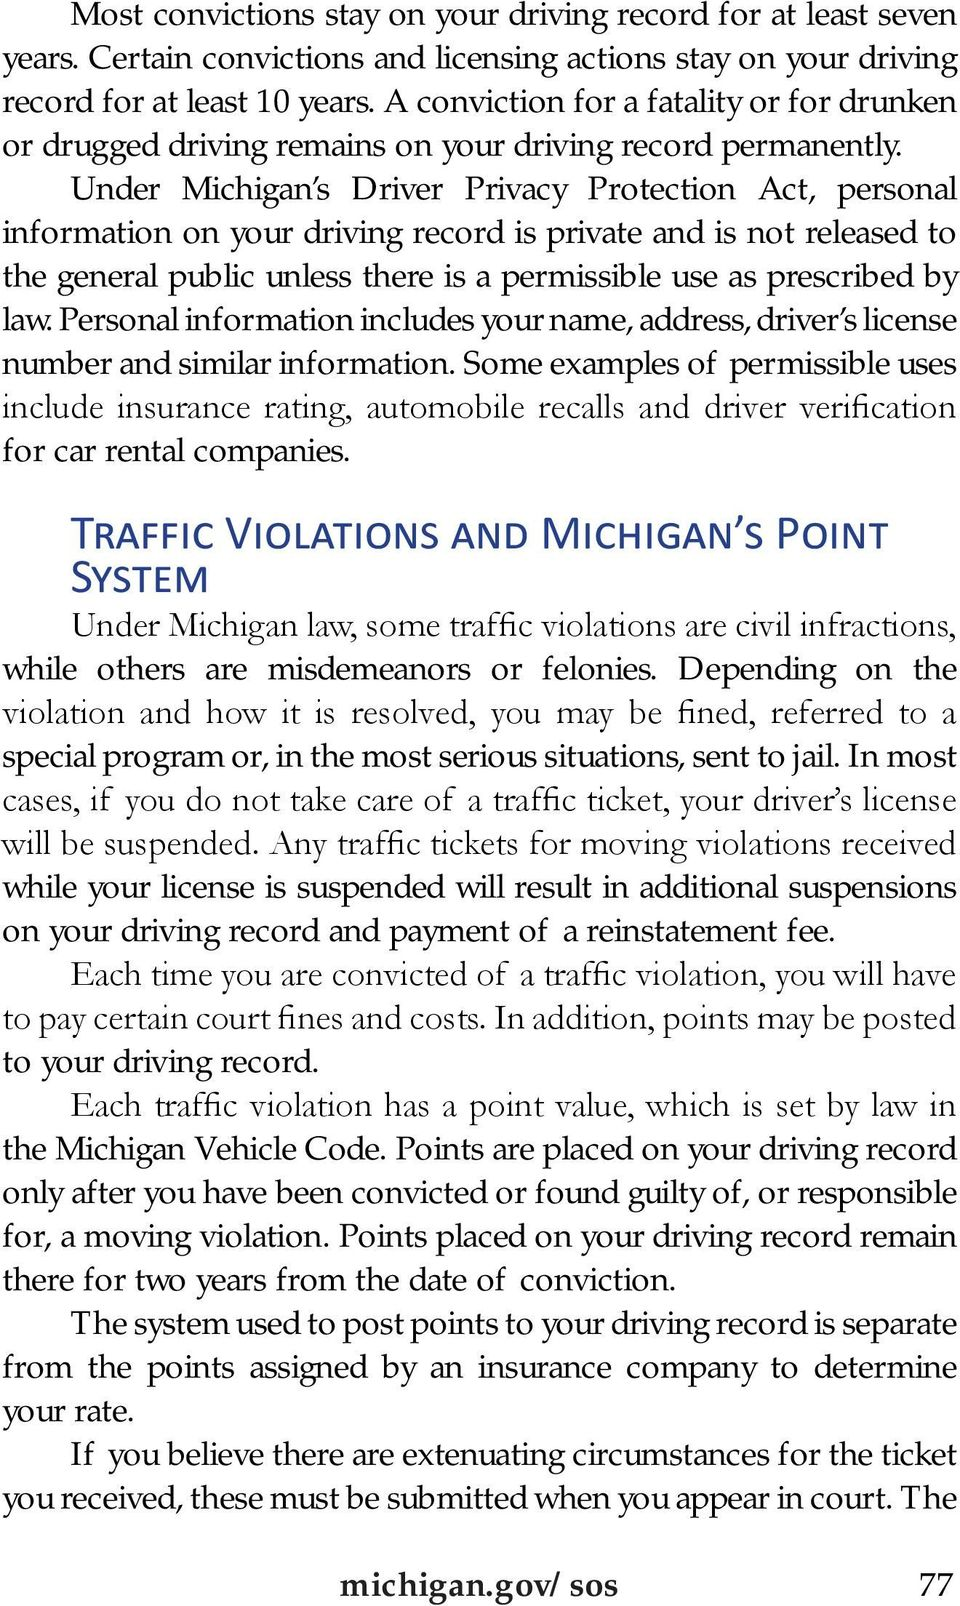 Under Michigan s Driver Privacy Protection Act, personal information on your driving record is private and is not released to the general public unless there is a permissible use as prescribed by law.